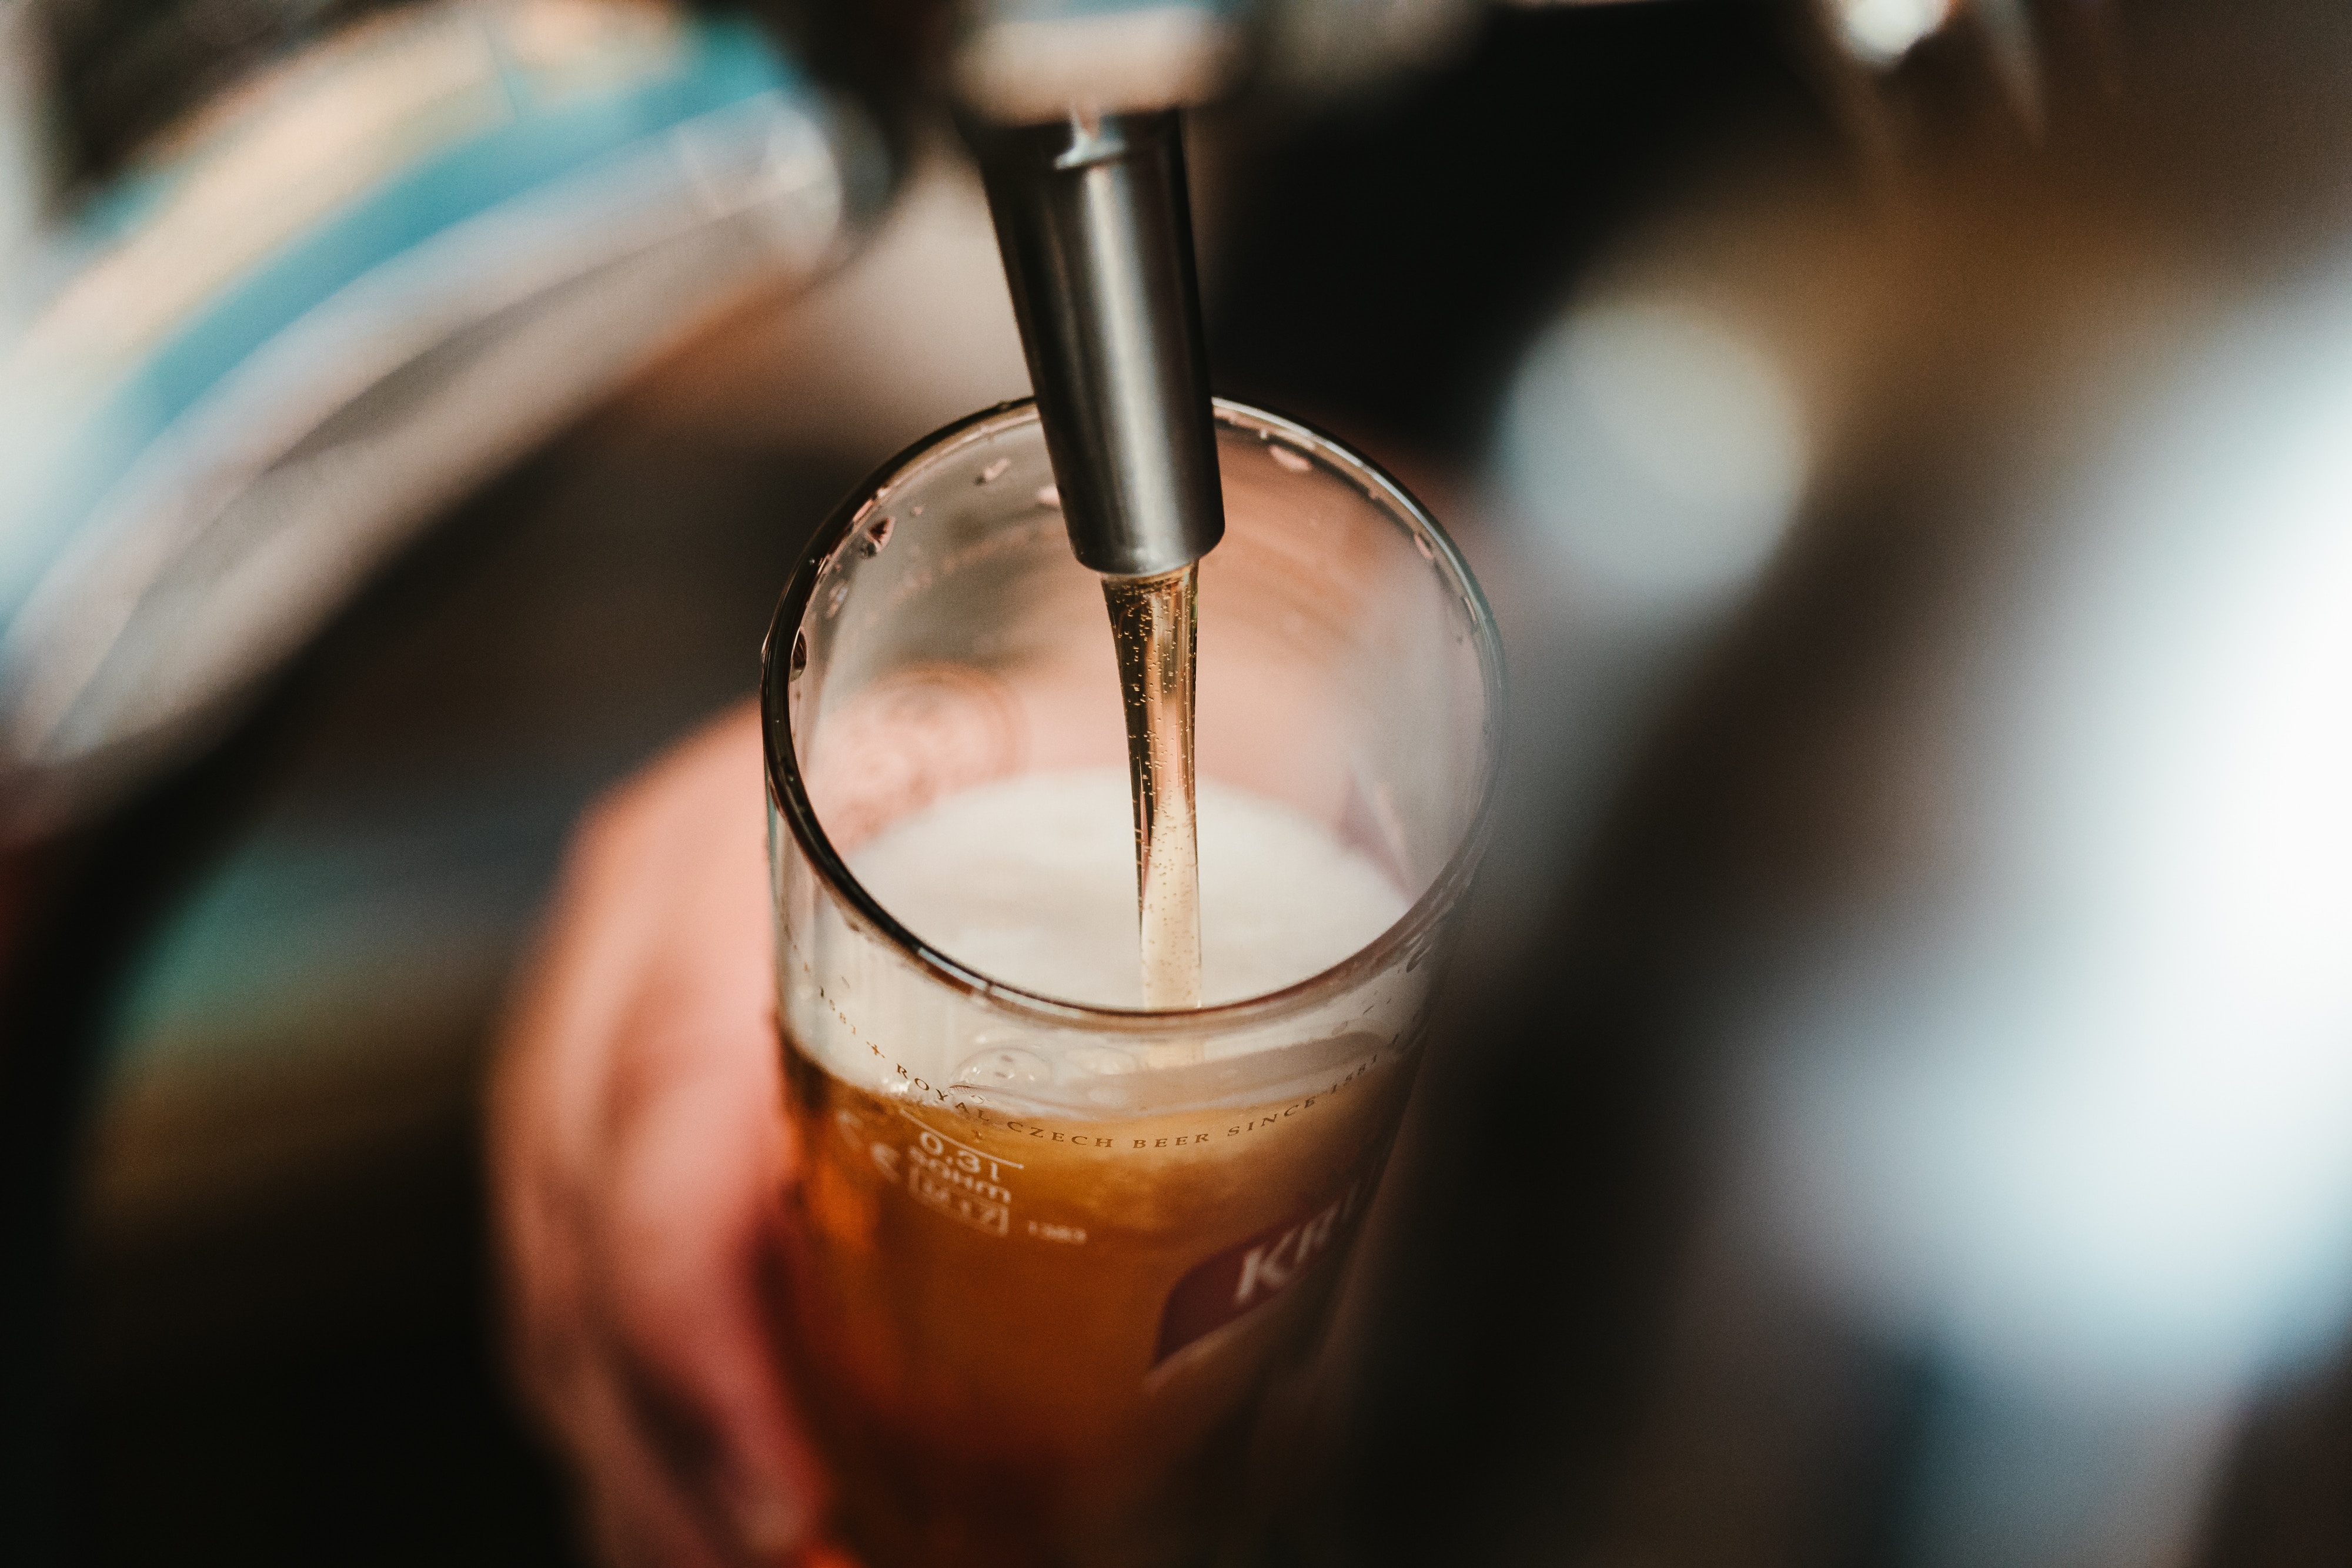 A bartender filling a glass of beer on tap